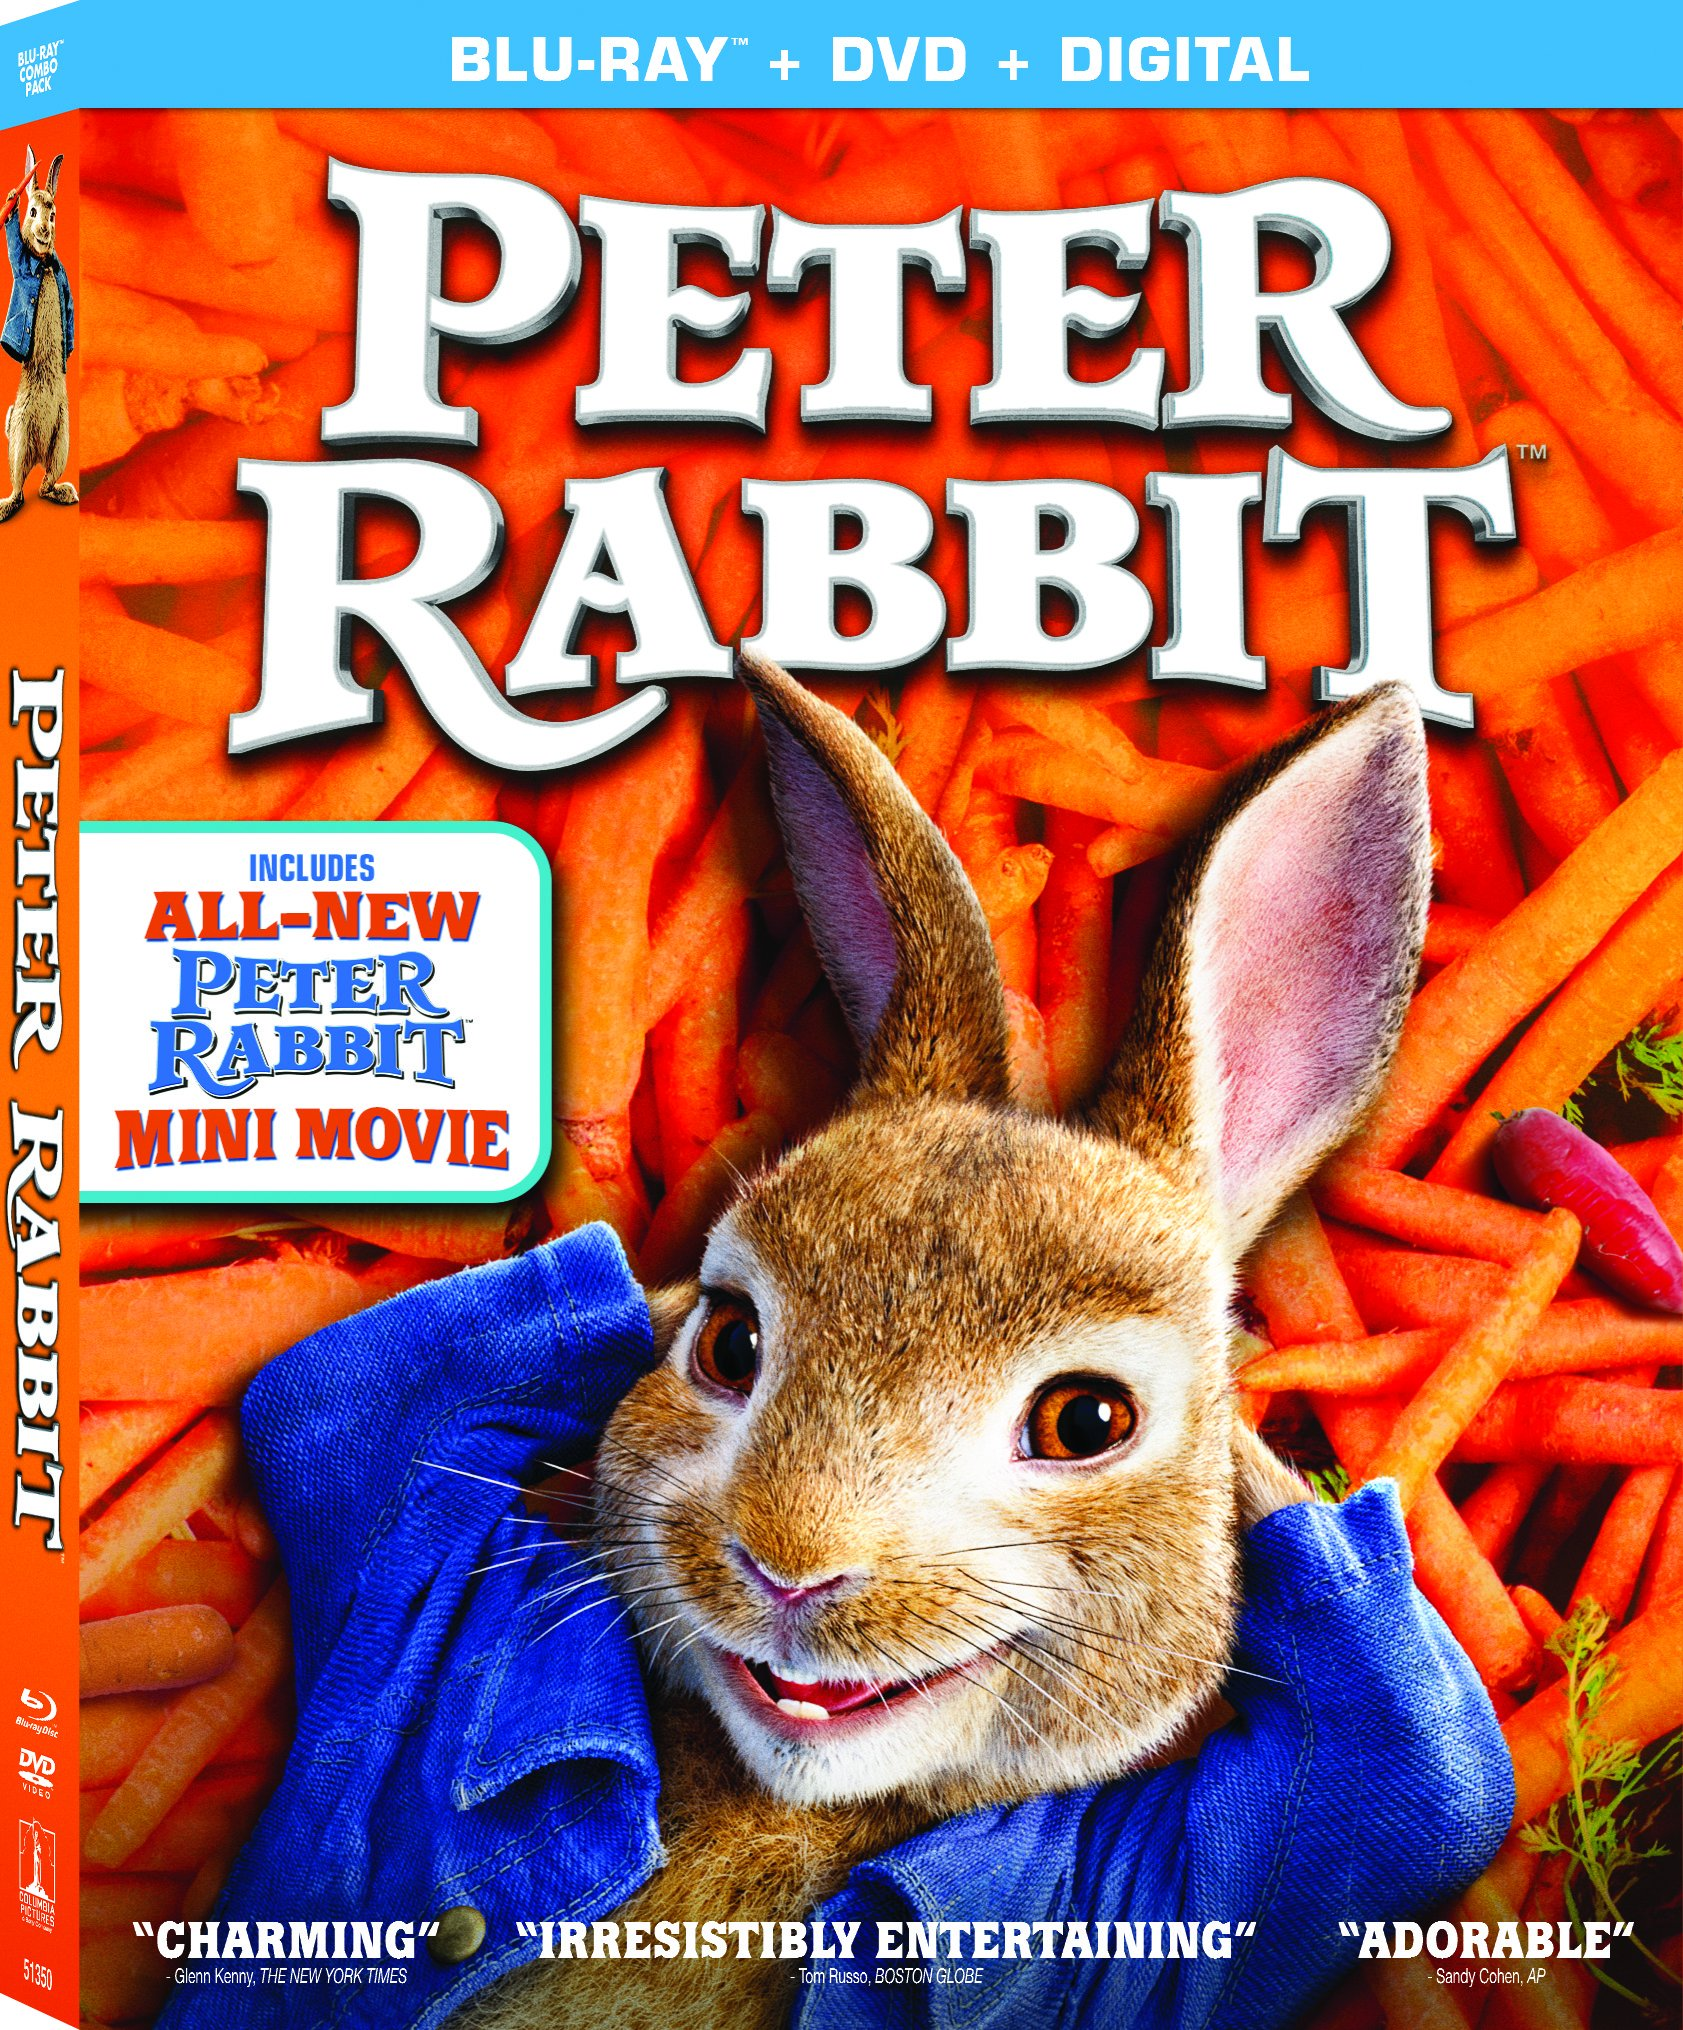 Blu-ray : Peter Rabbit (With DVD, Widescreen, , Dubbed, Digital Copy)